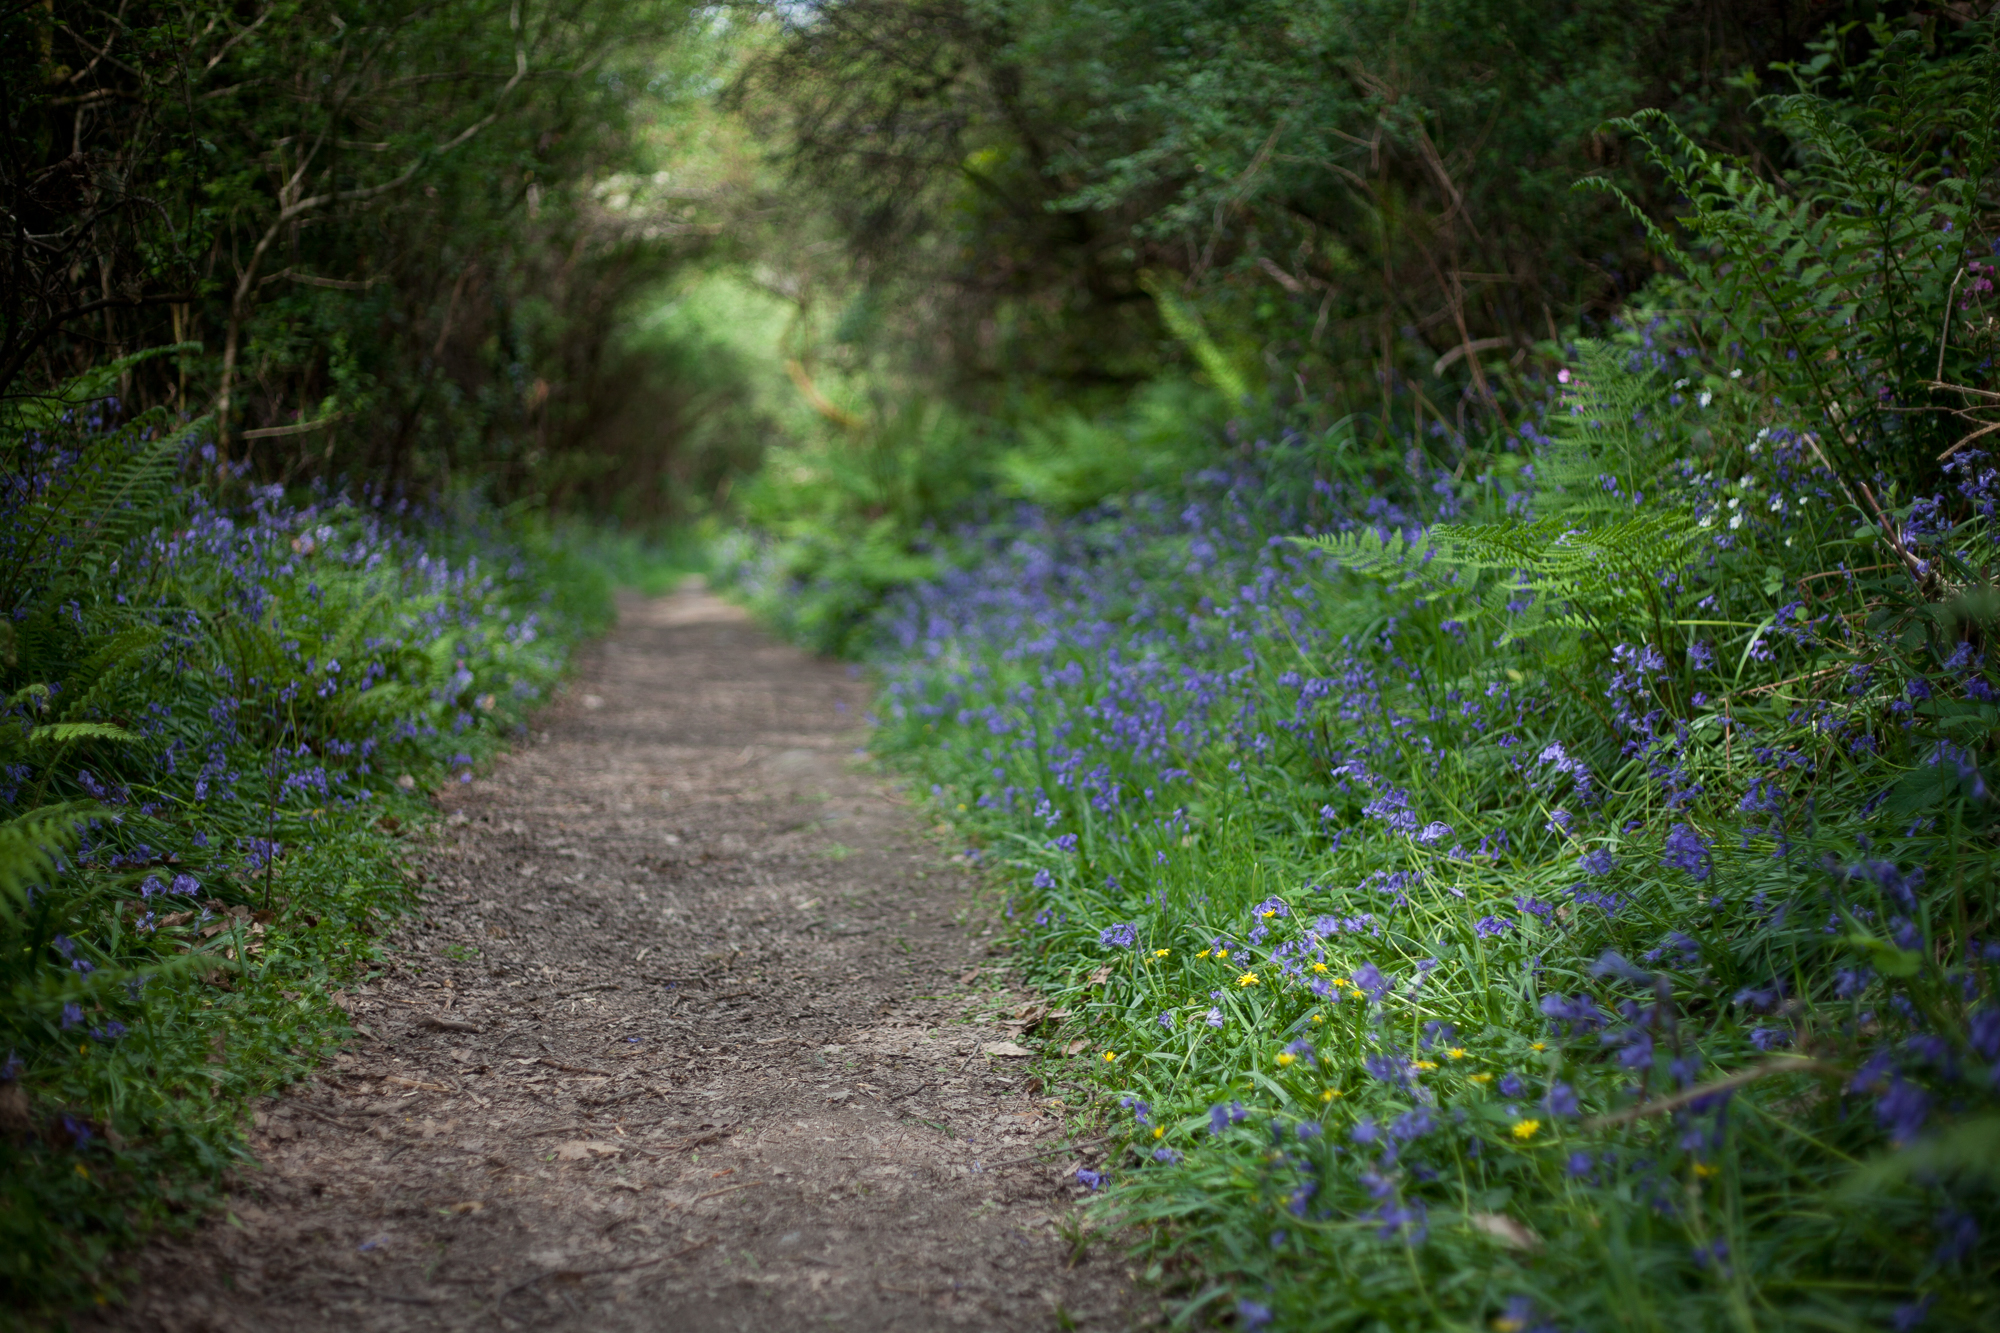 Bluebells lining a pathway through the woods. By Leonie Wise